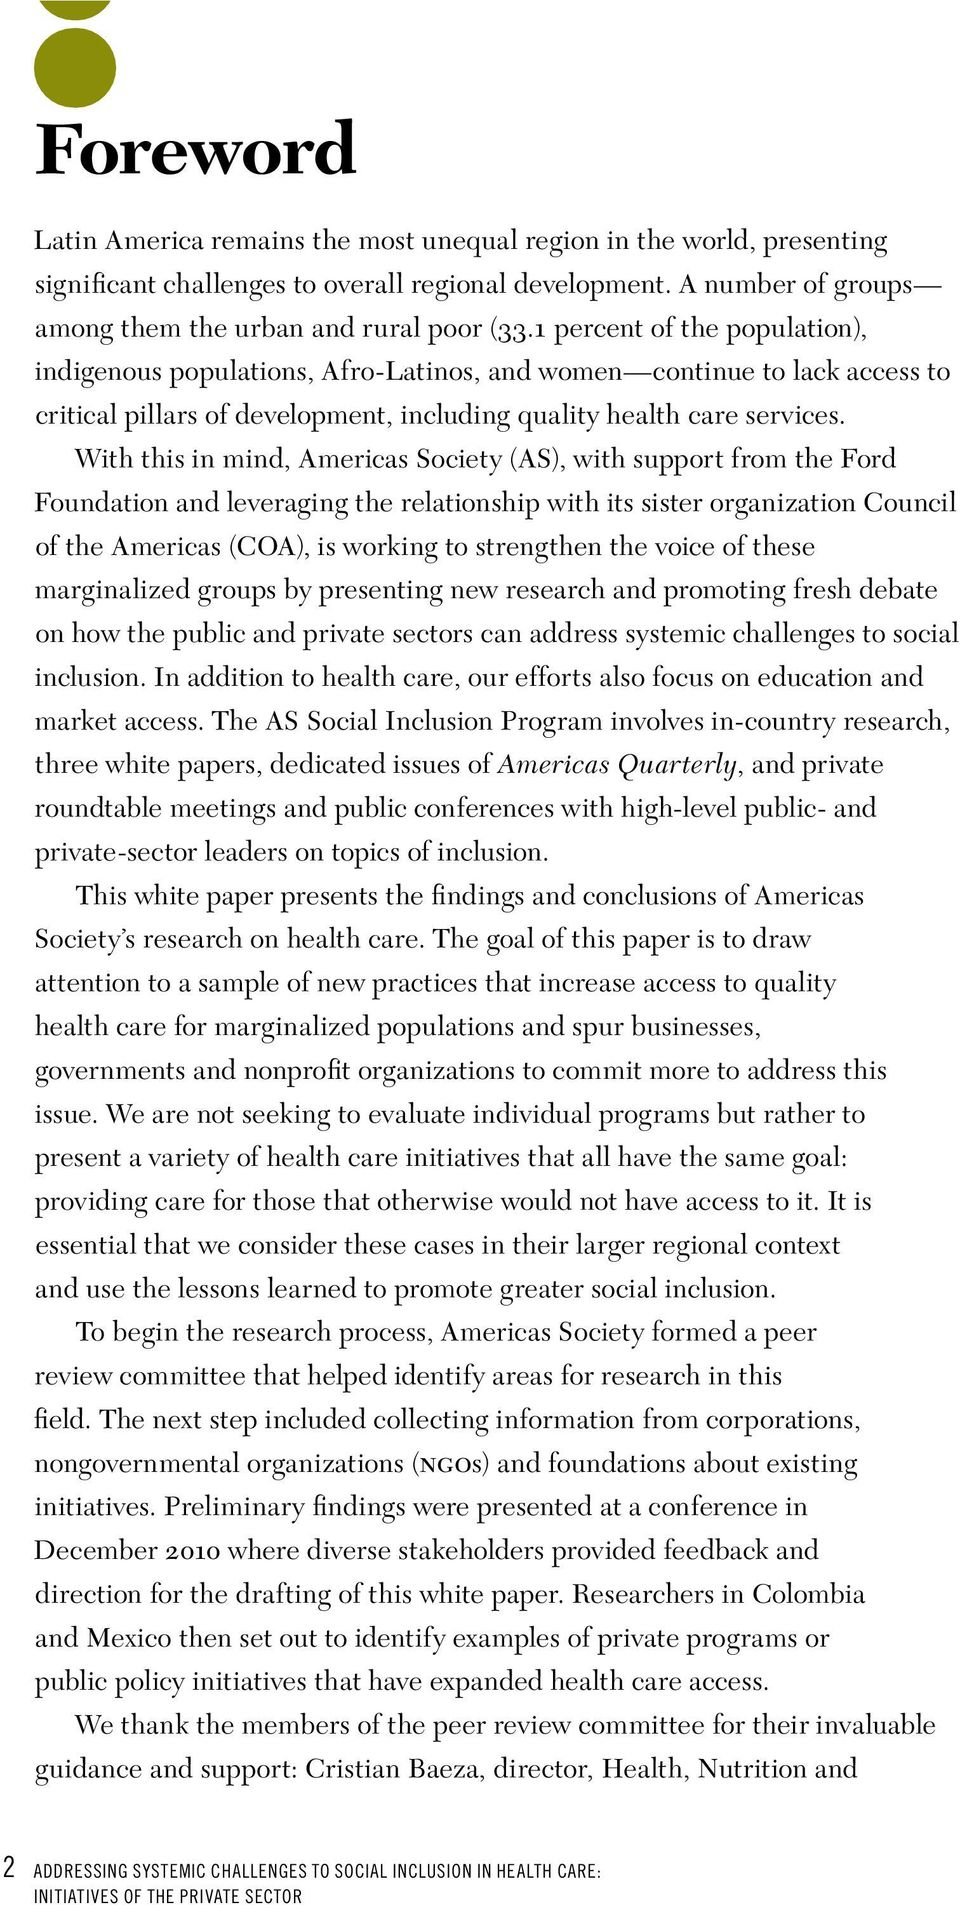 With this in mind, Americas Society (AS), with support from the Ford Foundation and leveraging the relationship with its sister organization Council of the Americas (COA), is working to strengthen